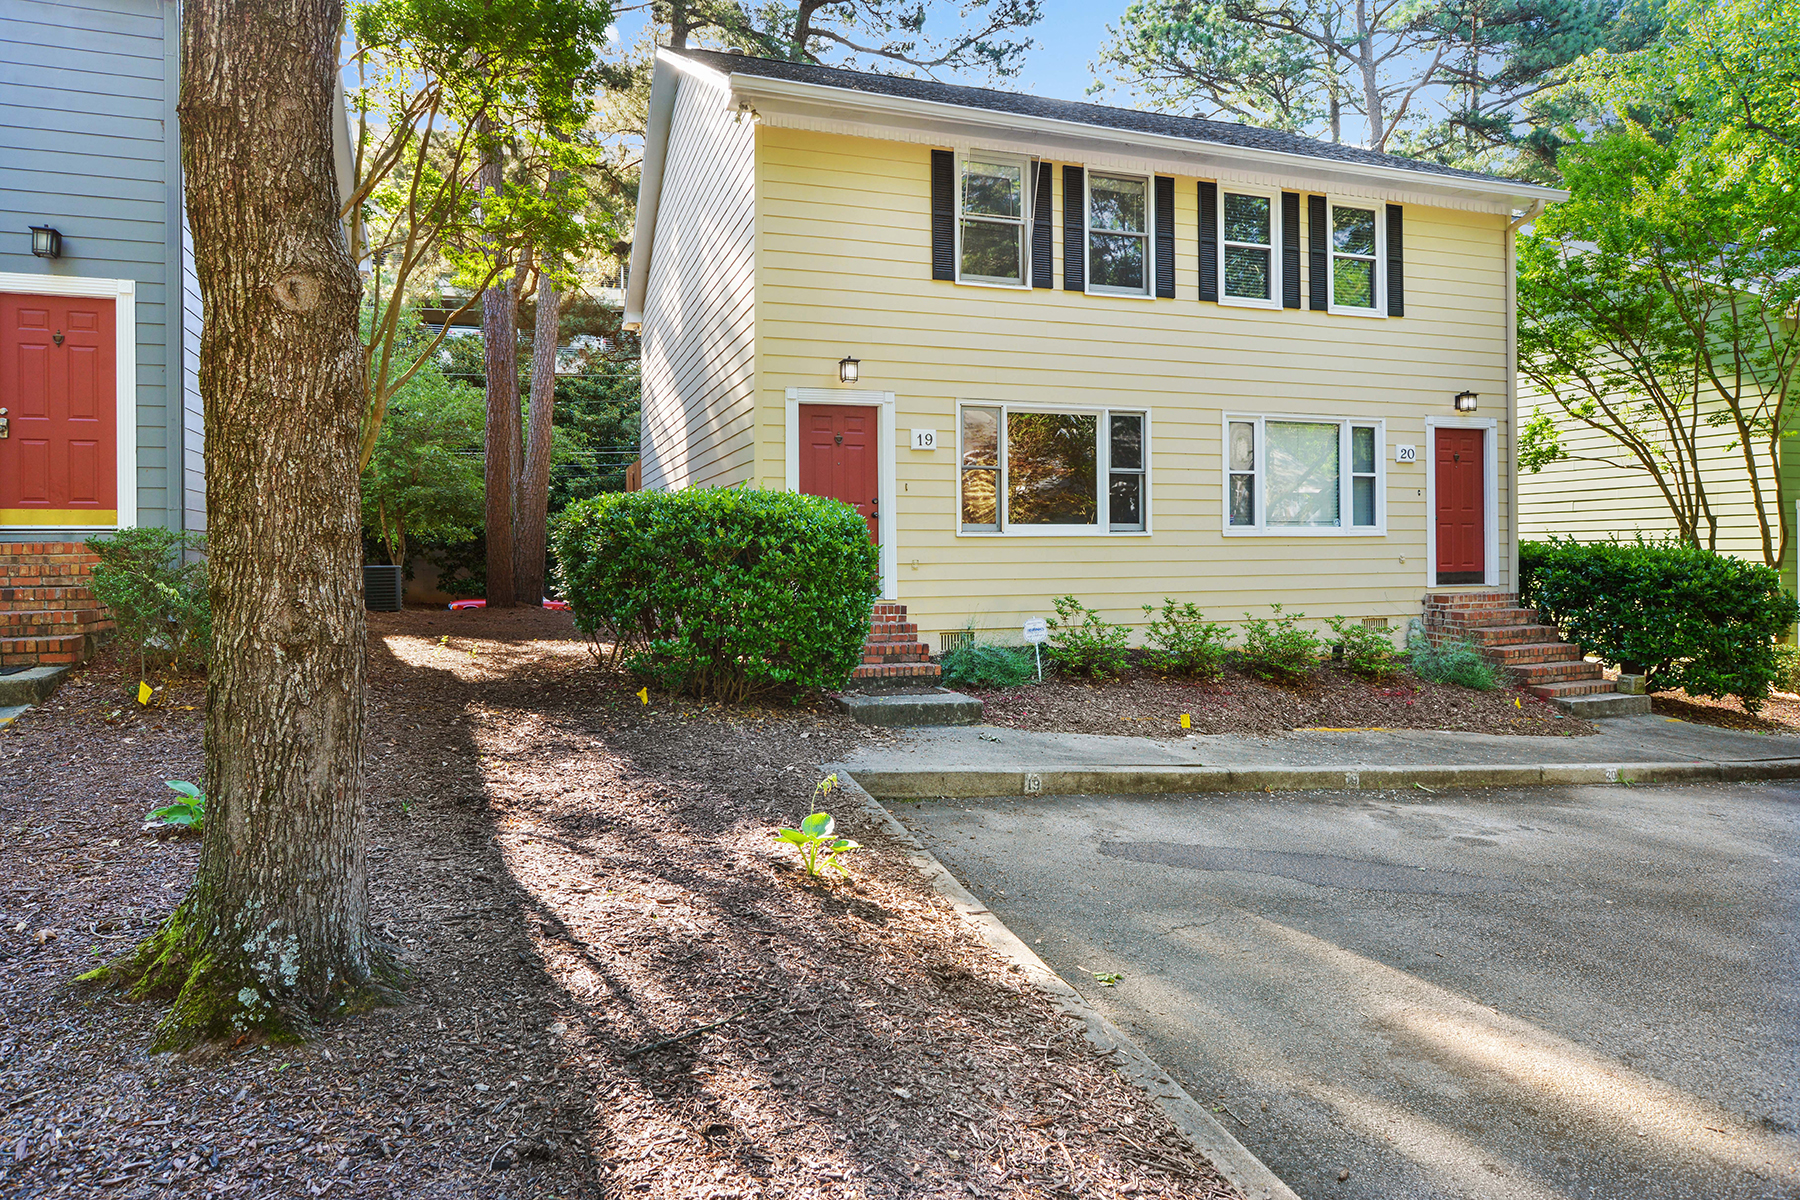 Townhouse for Sale at Renovated Townhome in West Midtown 19 Holly Downs Ct Atlanta, Georgia 30318 United States